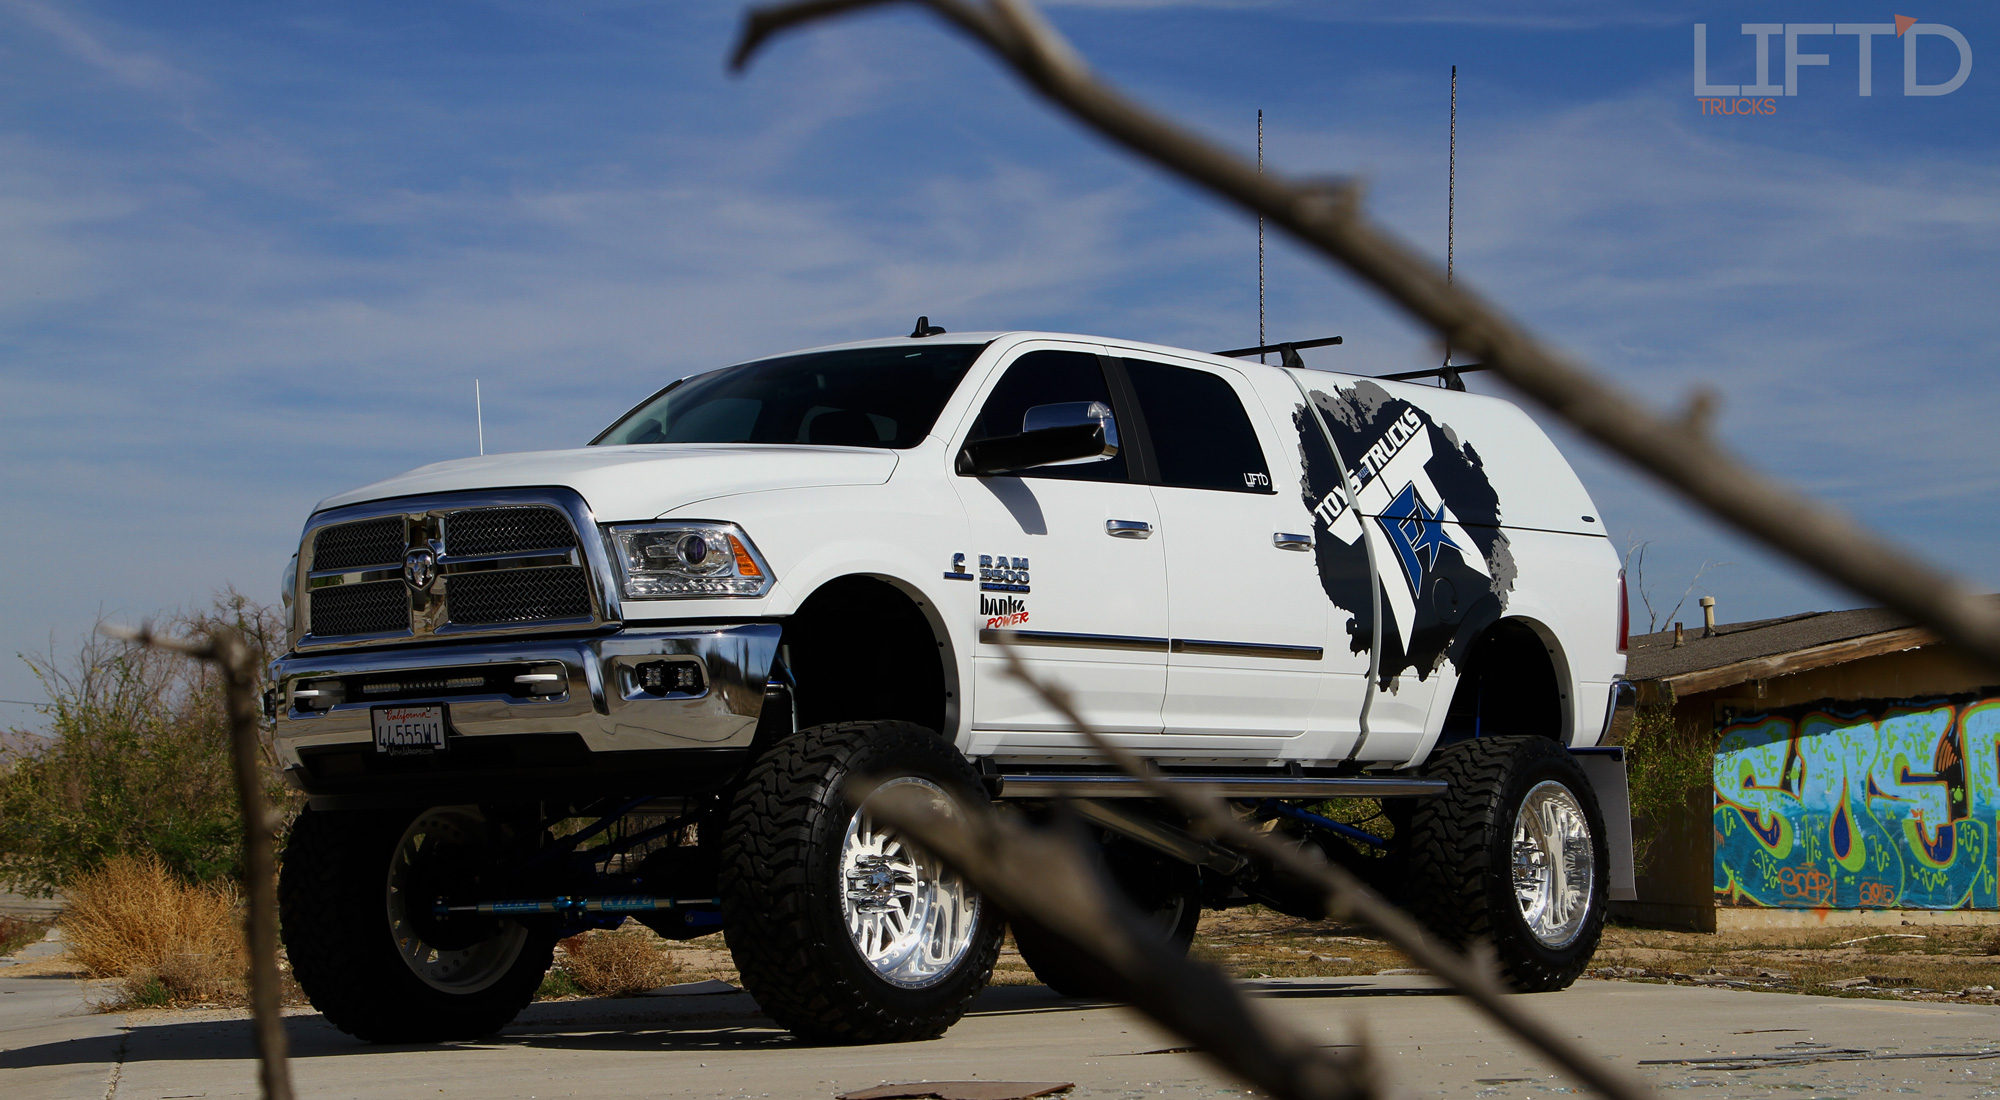 Fun Ton Toys For Trucks 2015 Ram 3500 – Lift d Trucks